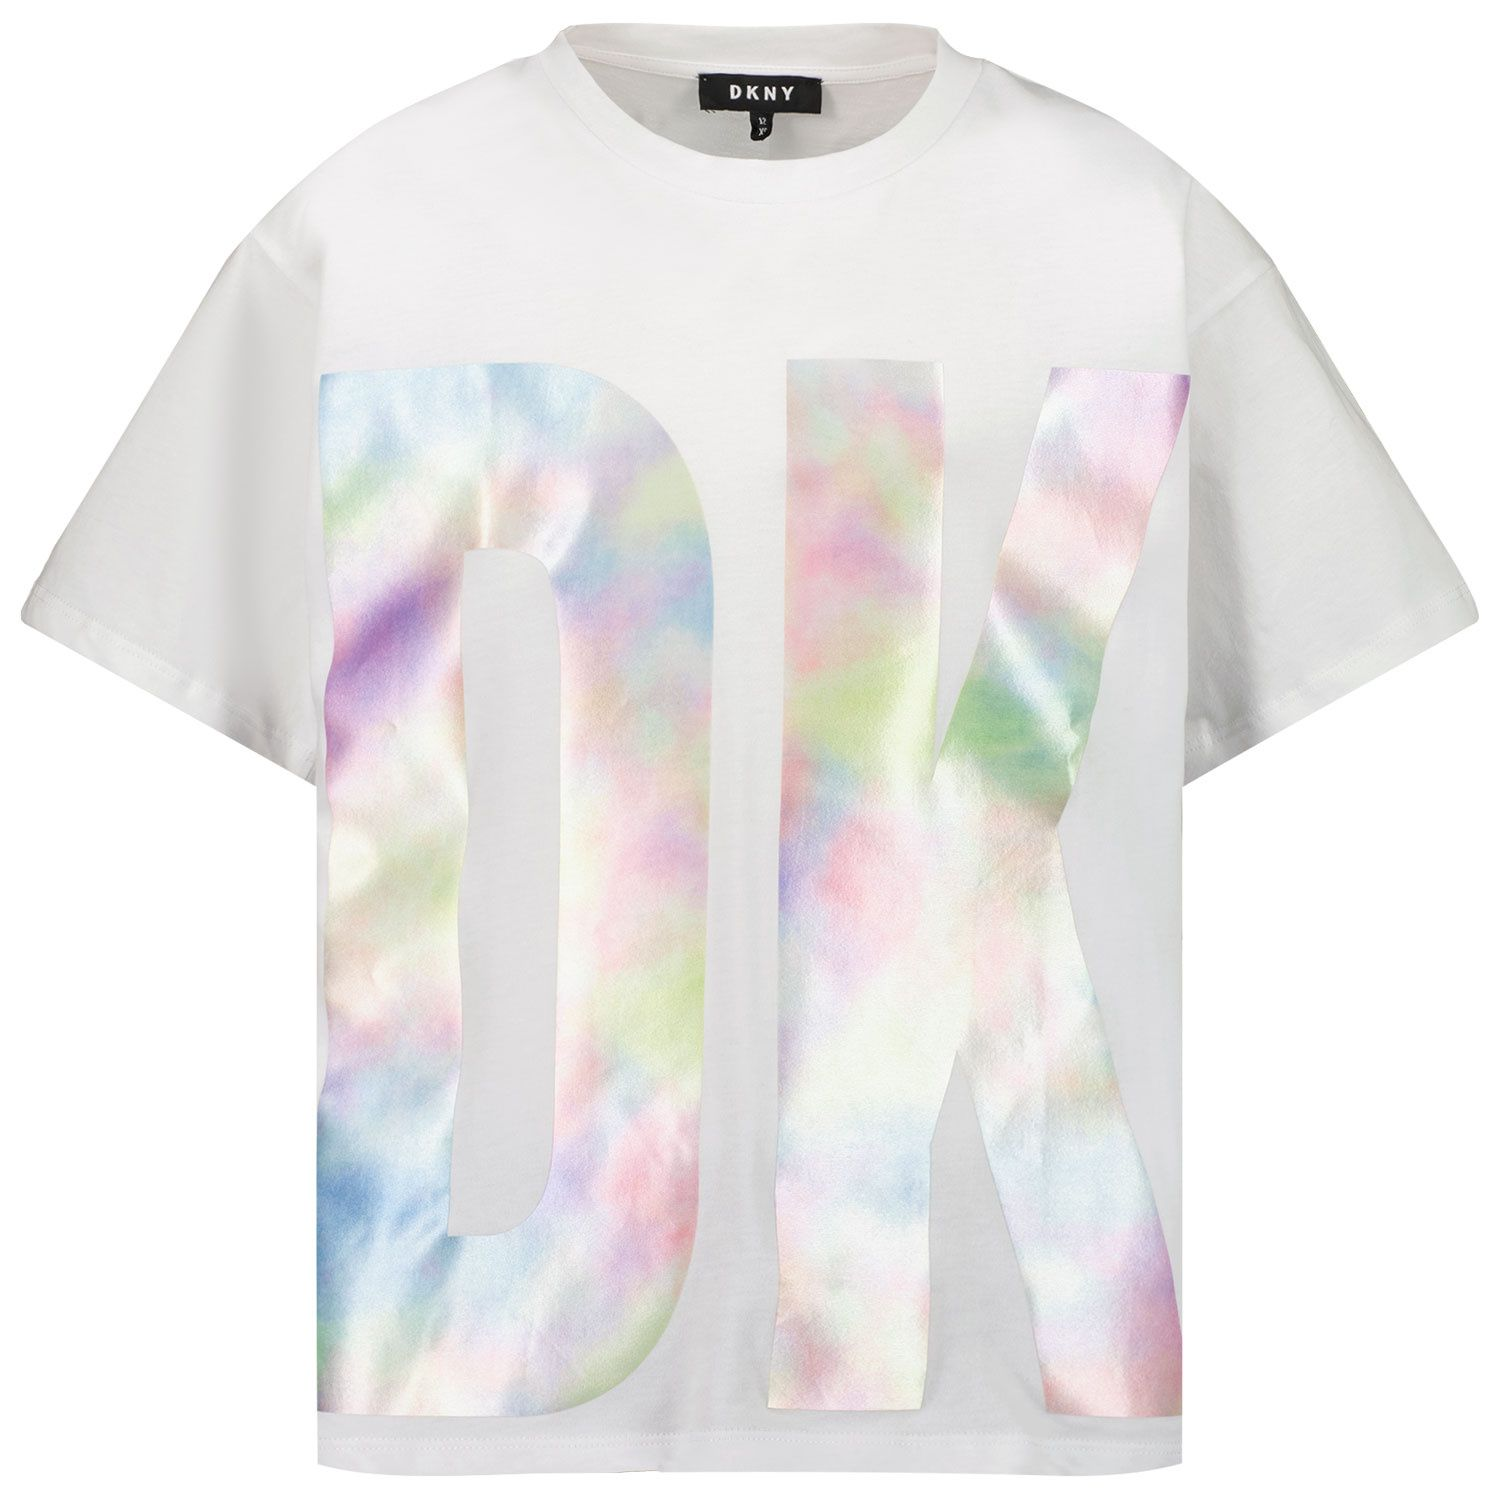 Picture of DKNY D35R52 kids t-shirt white